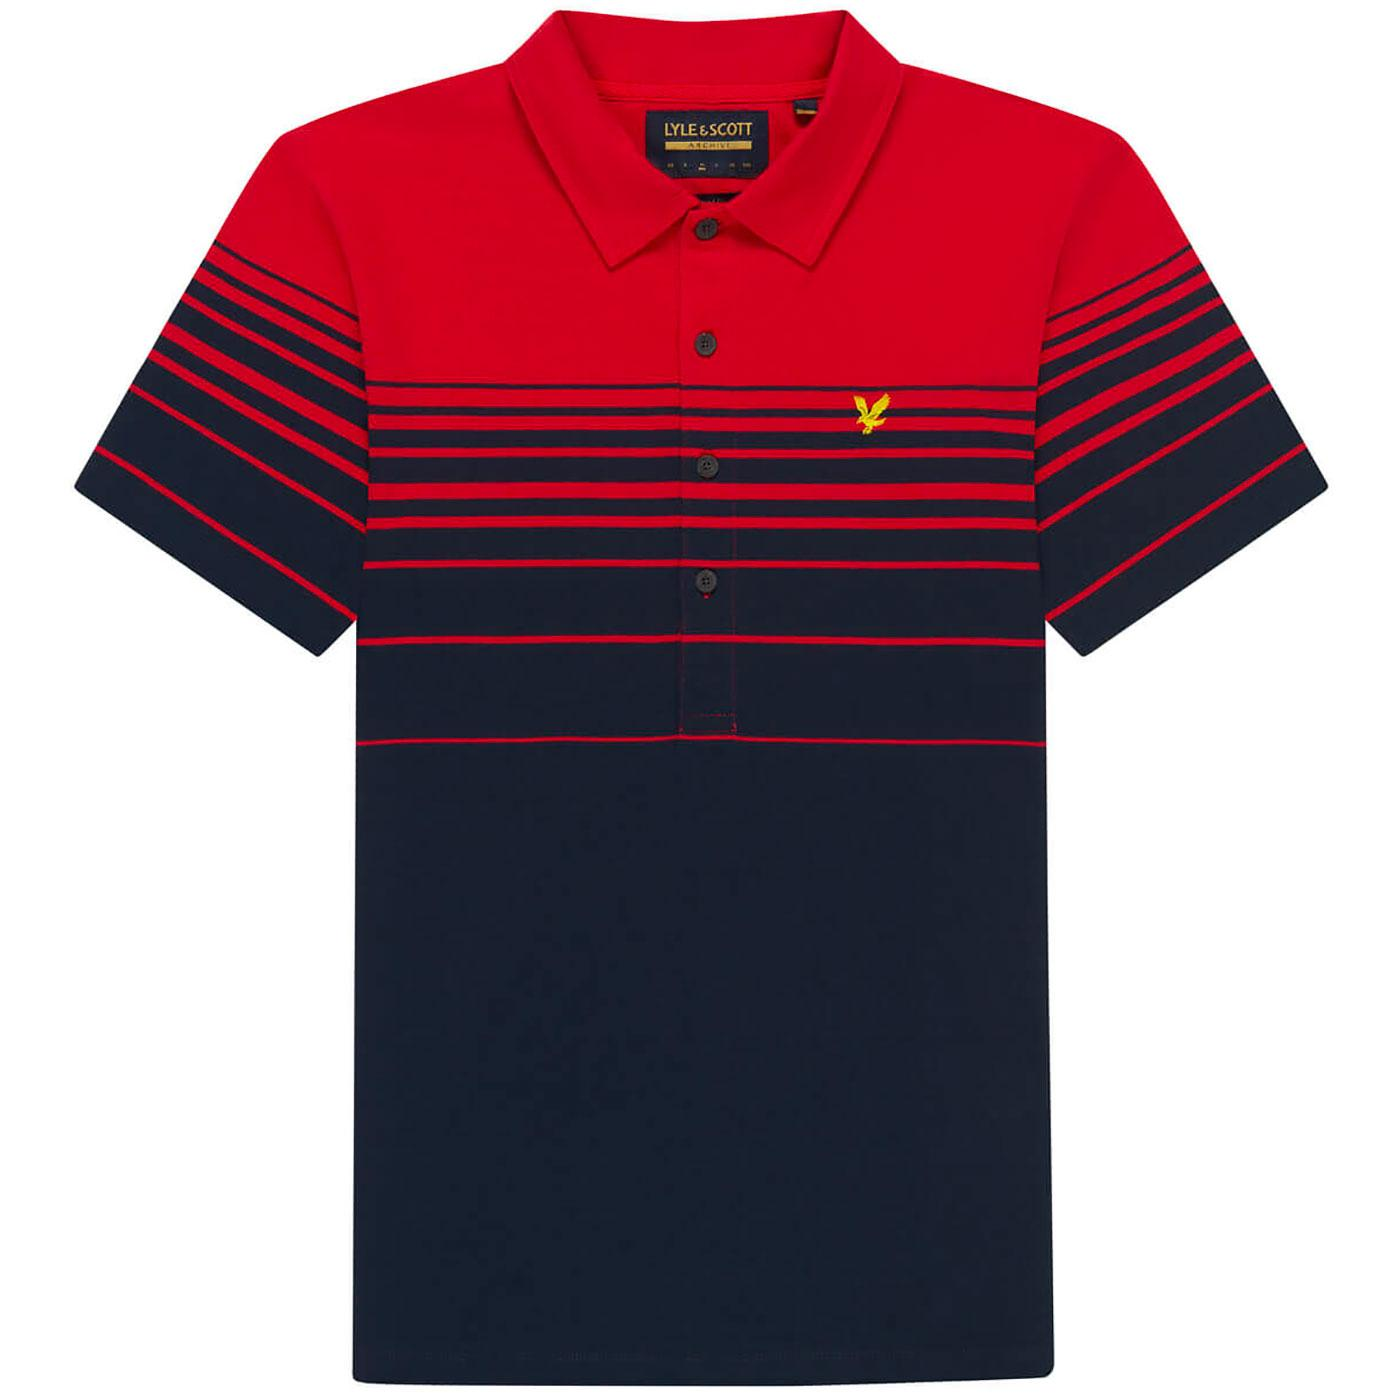 LYLE & SCOTT Archive Mod Placement Stripe Polo CR